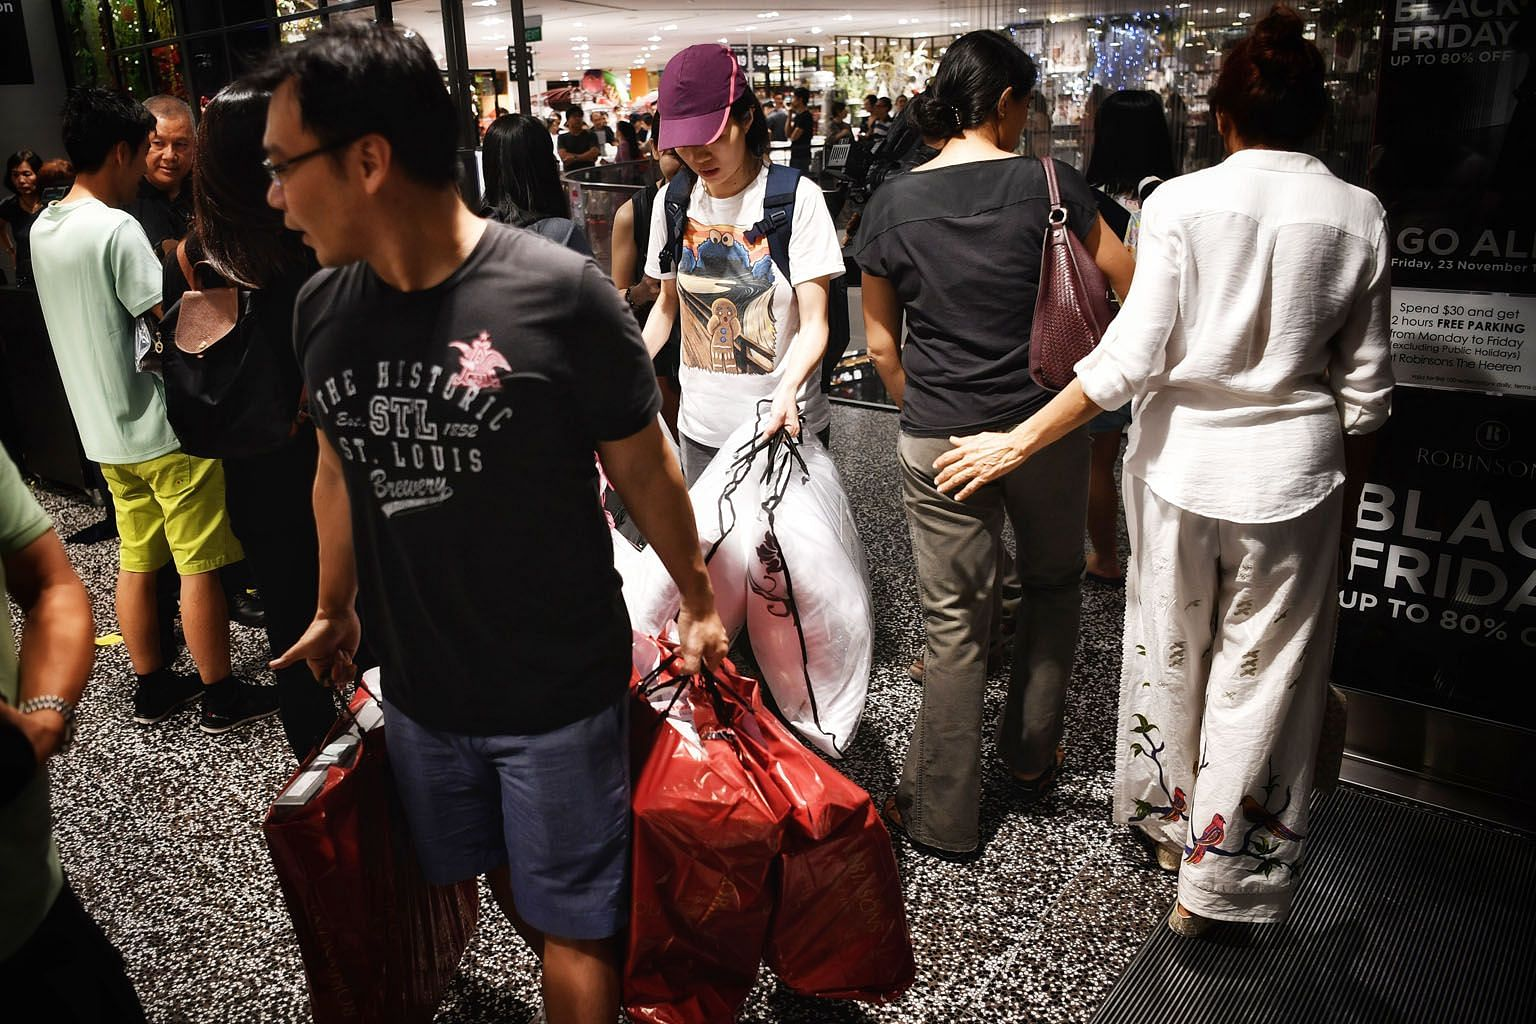 Sales by department stores retreated 3.1 per cent. But sellers of wearing apparel and footwear saw takings rise 3.4 per cent compared with the same period last year.